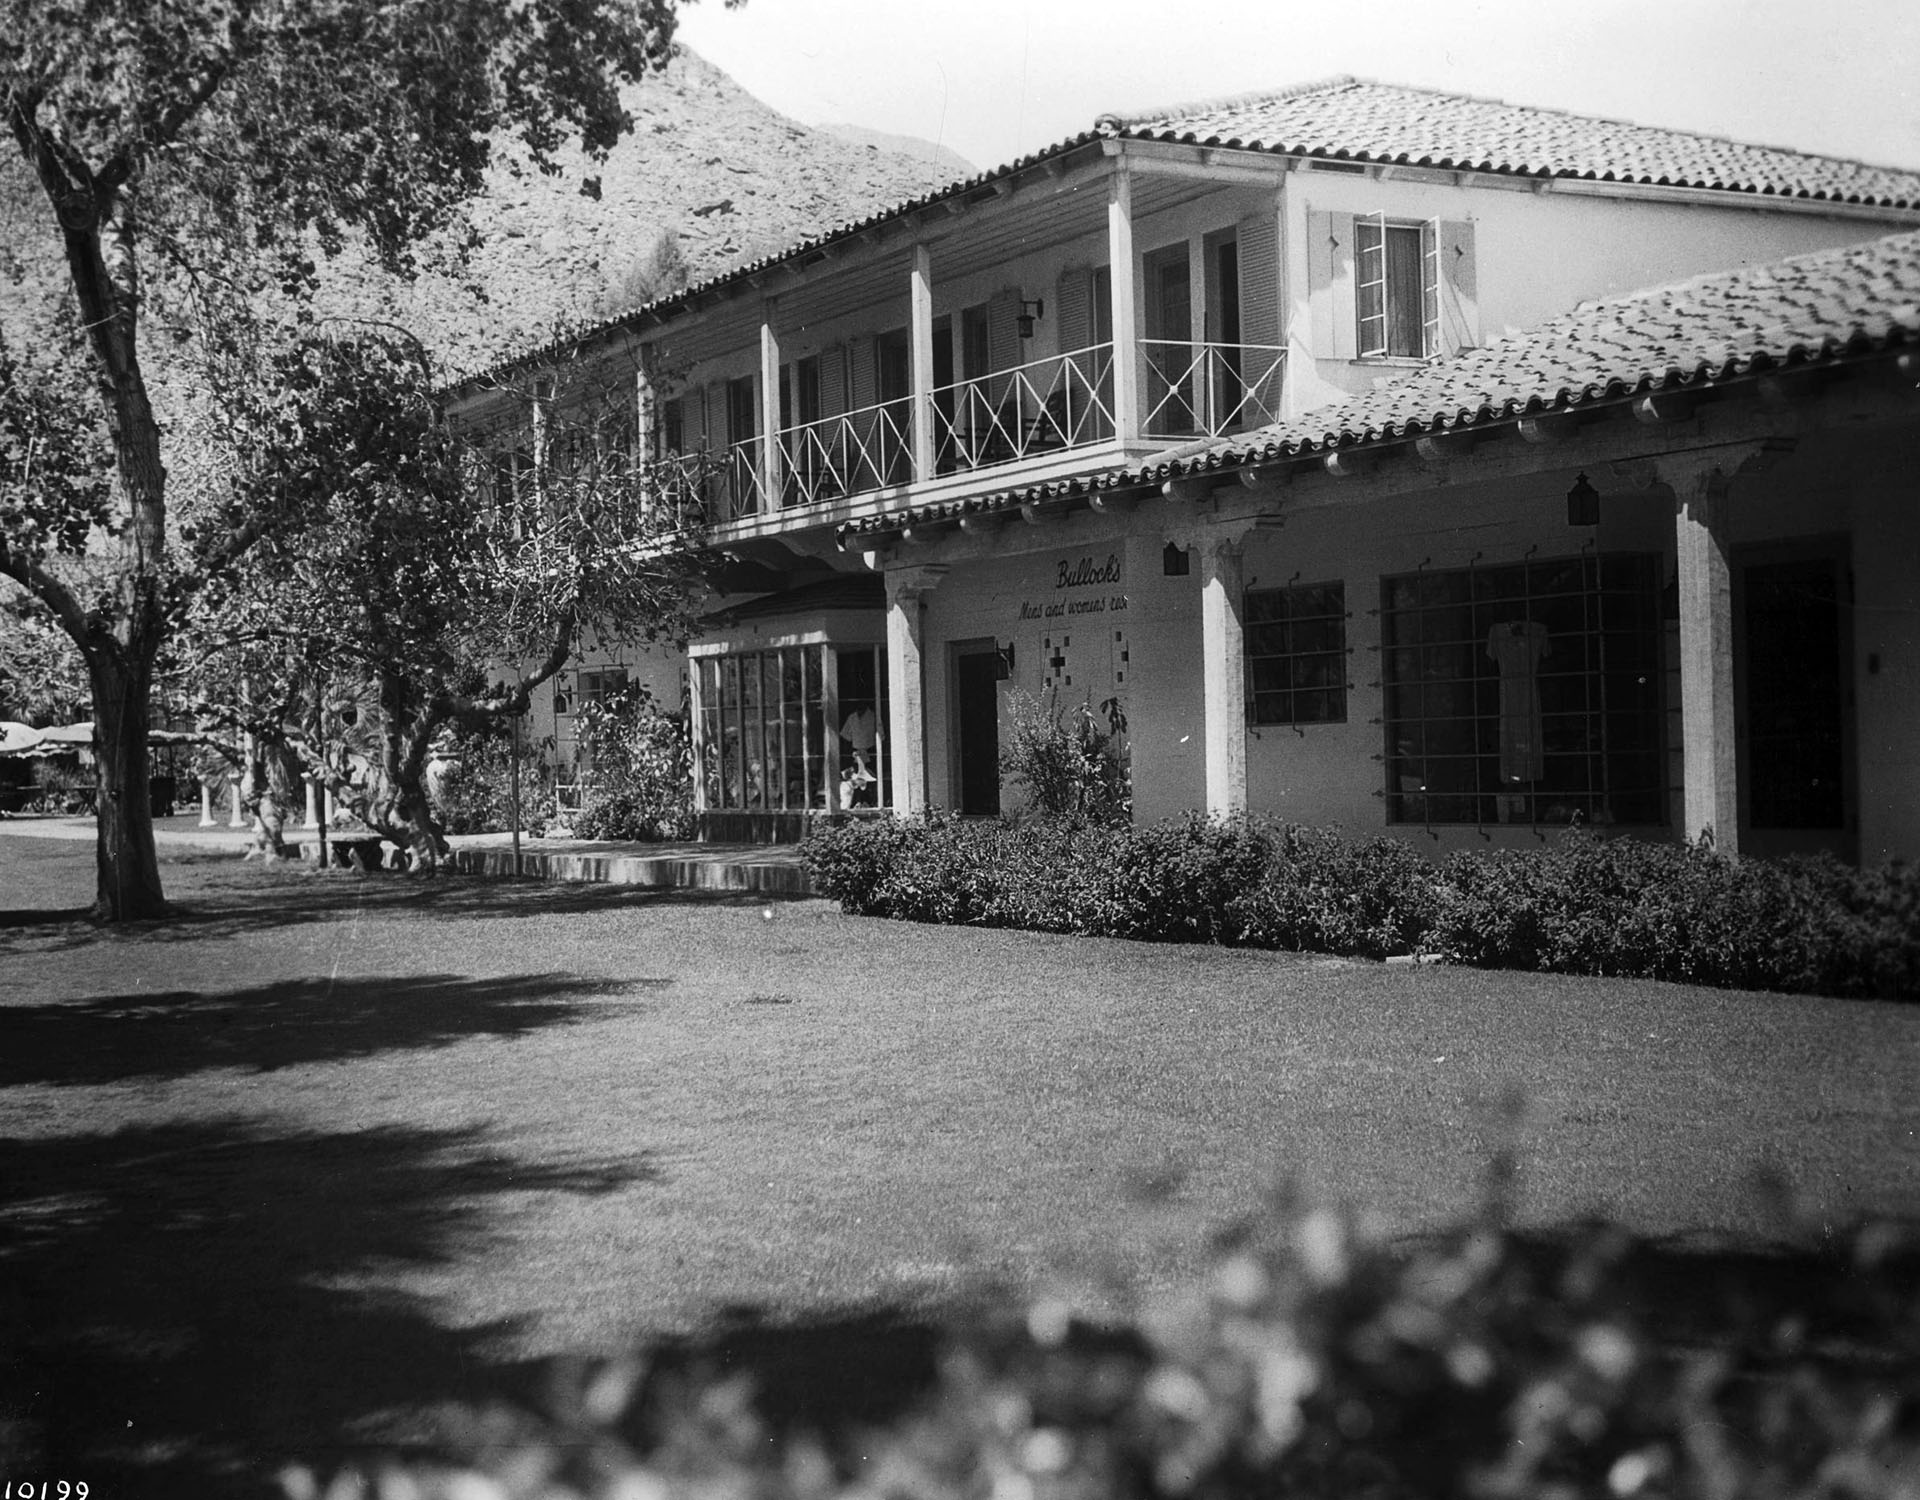 Exterior view of the Desert Inn resort in Palm Springs, ca.1940